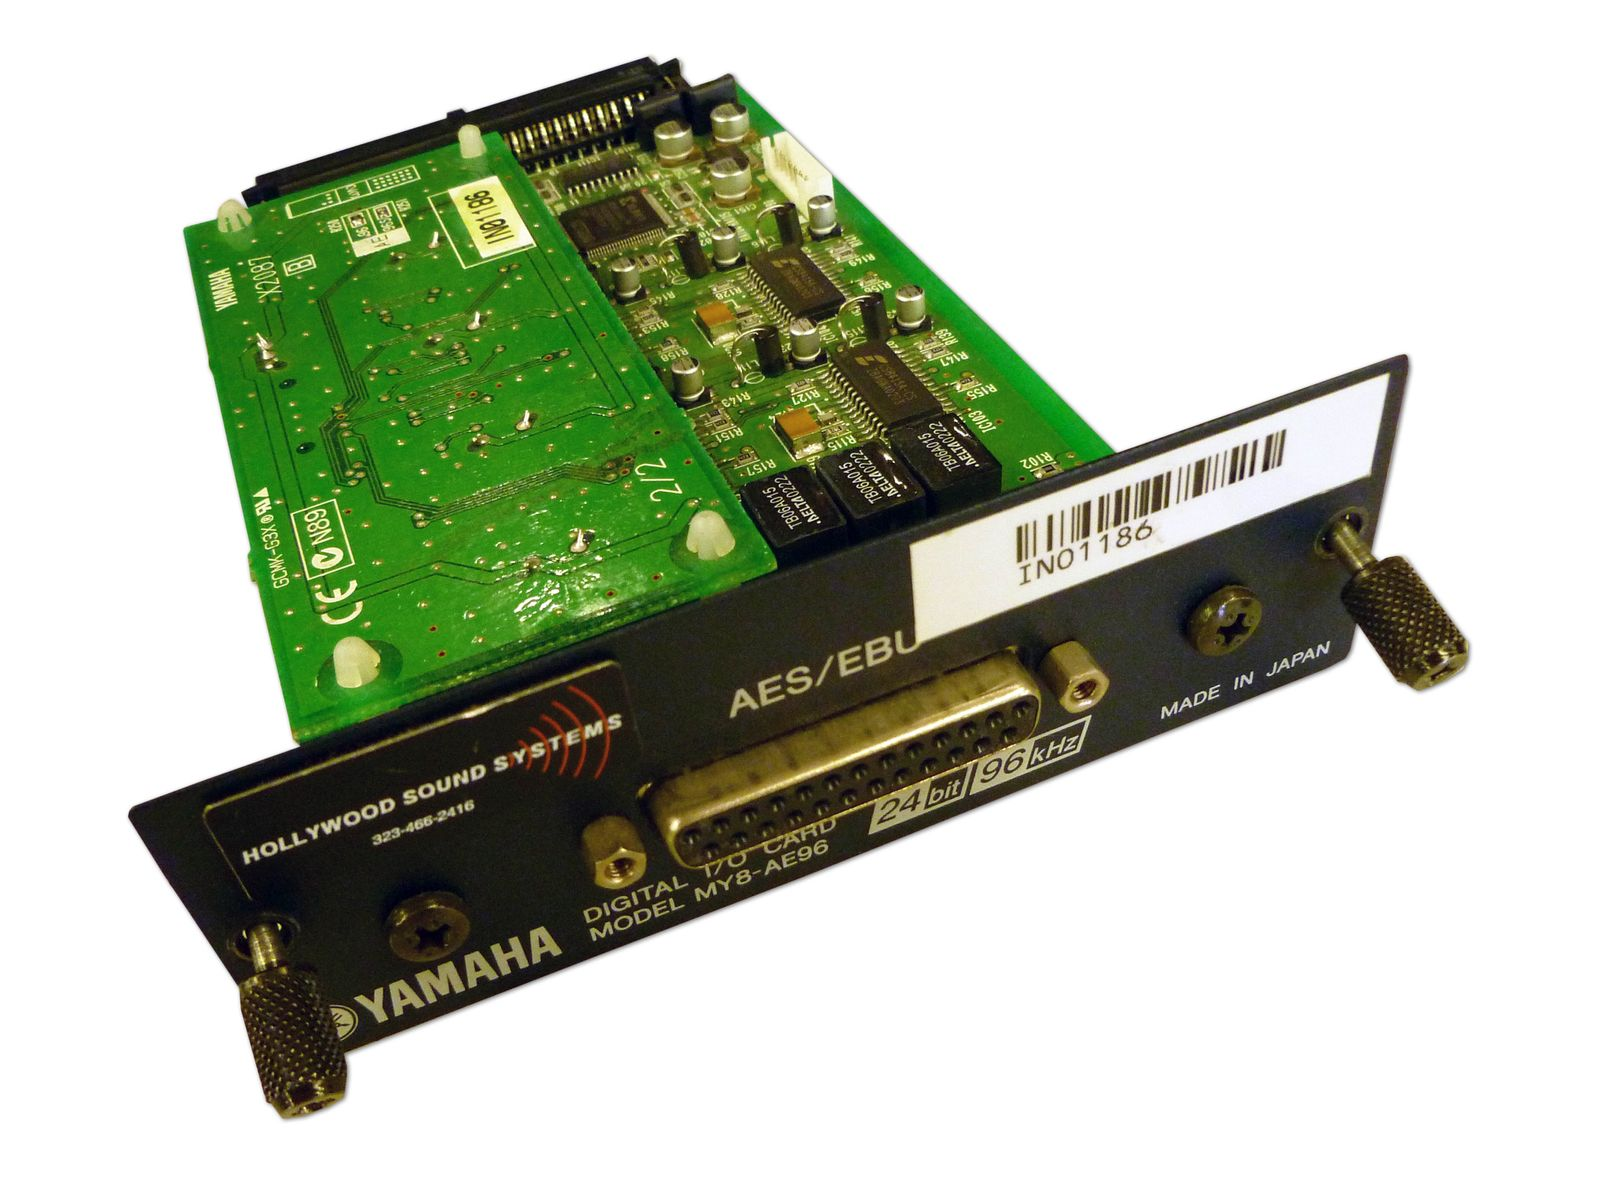 The Yamaha Model MY8-AE96 AES/EBU I/O Card is available at Hollywood Sound Systems.